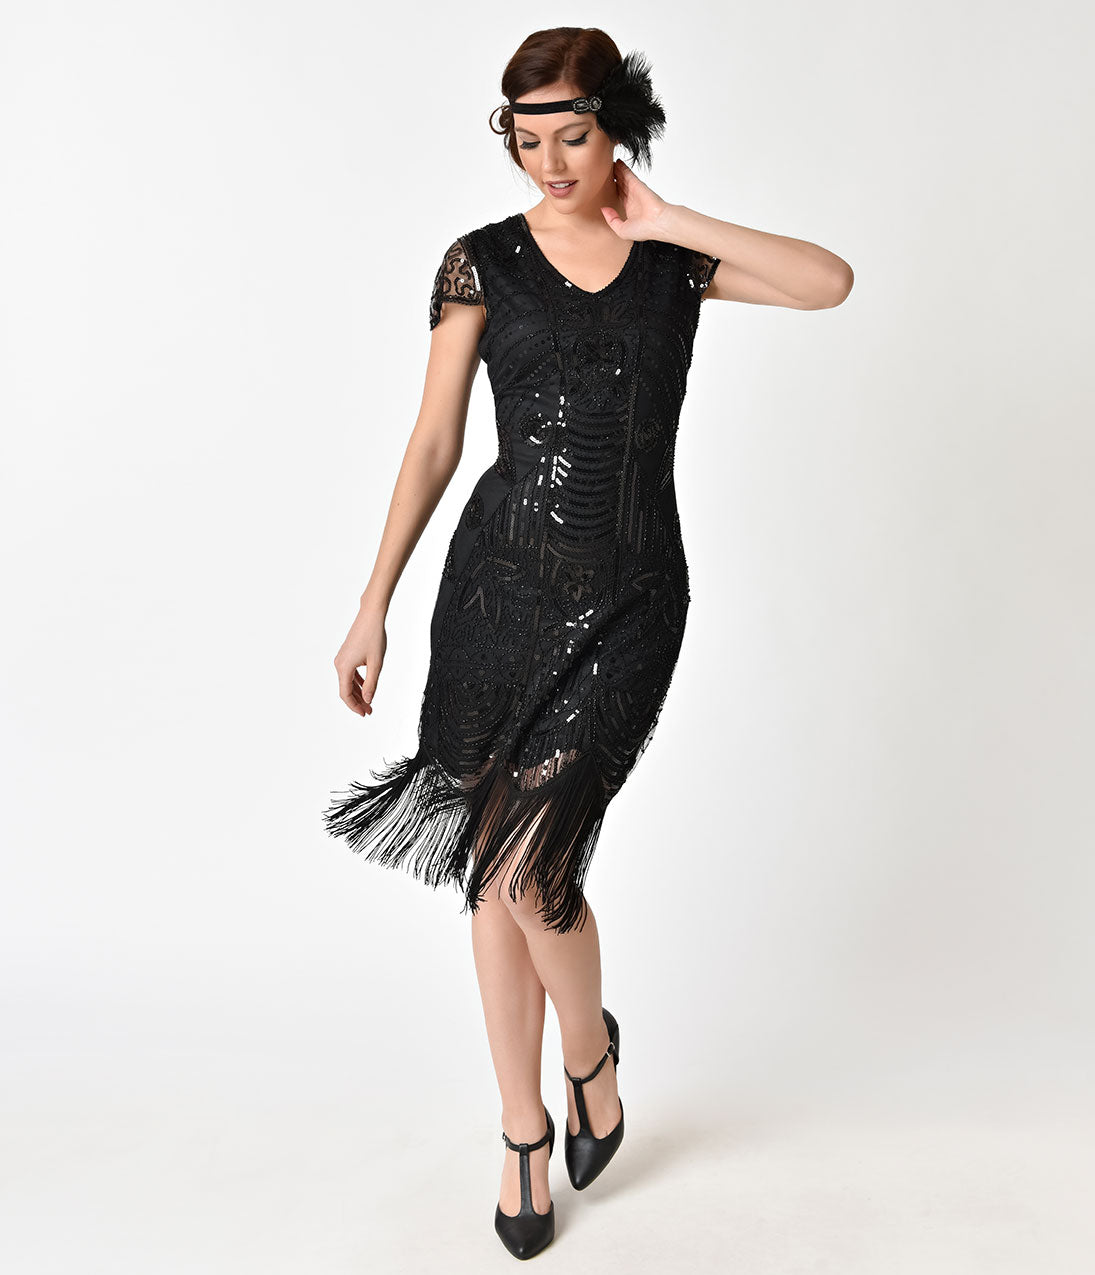 1920s Evening Dresses & Formal Gowns Unique Vintage Black Beaded Cap Sleeve Chantal Fringe Flapper Dress $63.00 AT vintagedancer.com